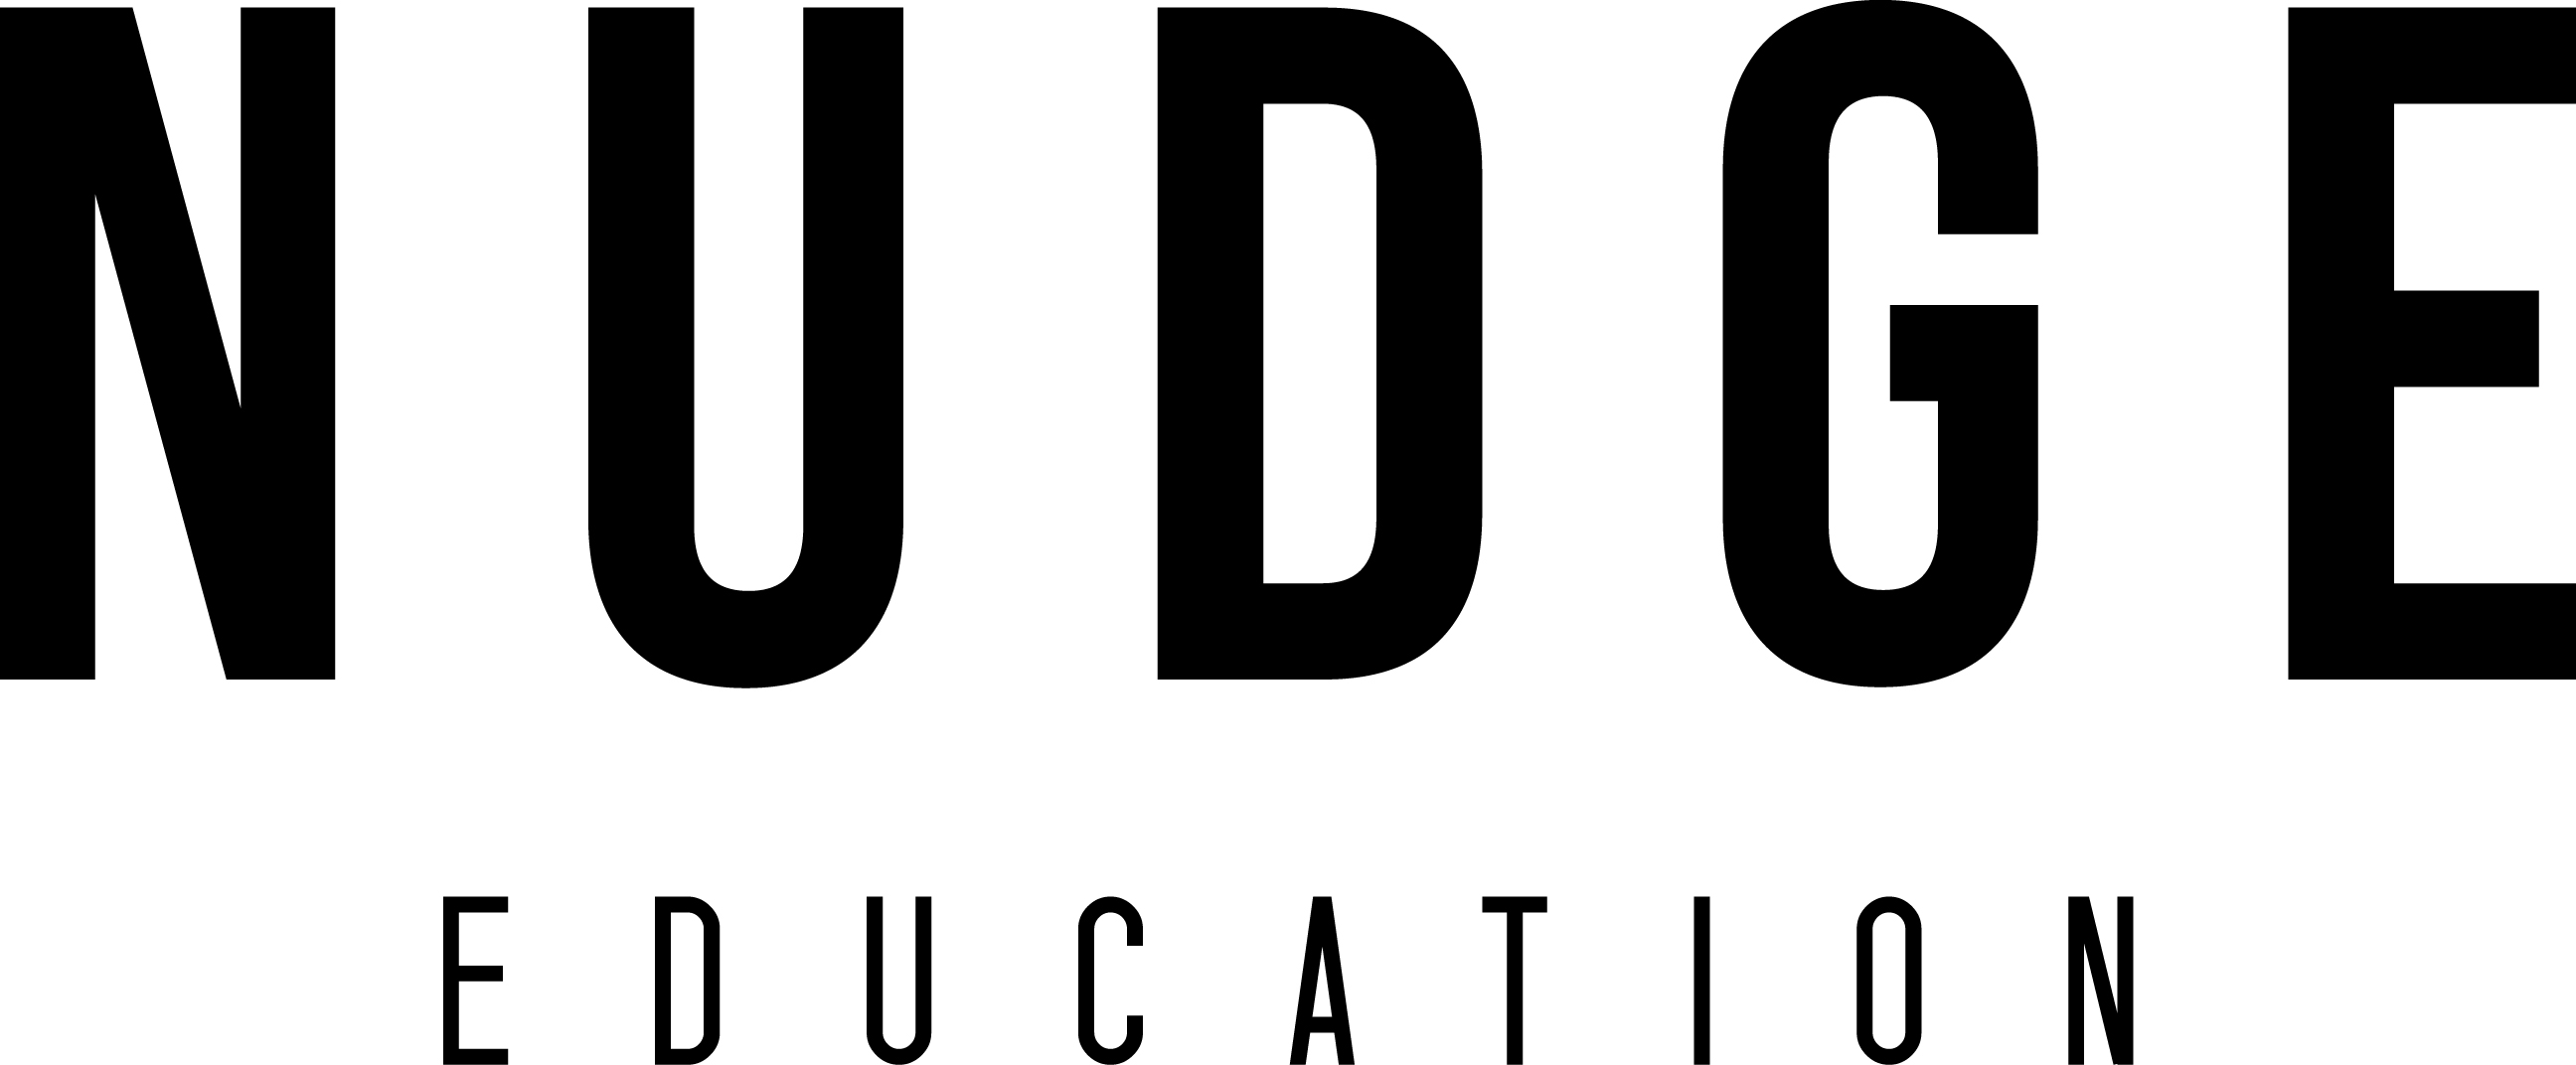 Nudge Education Limited